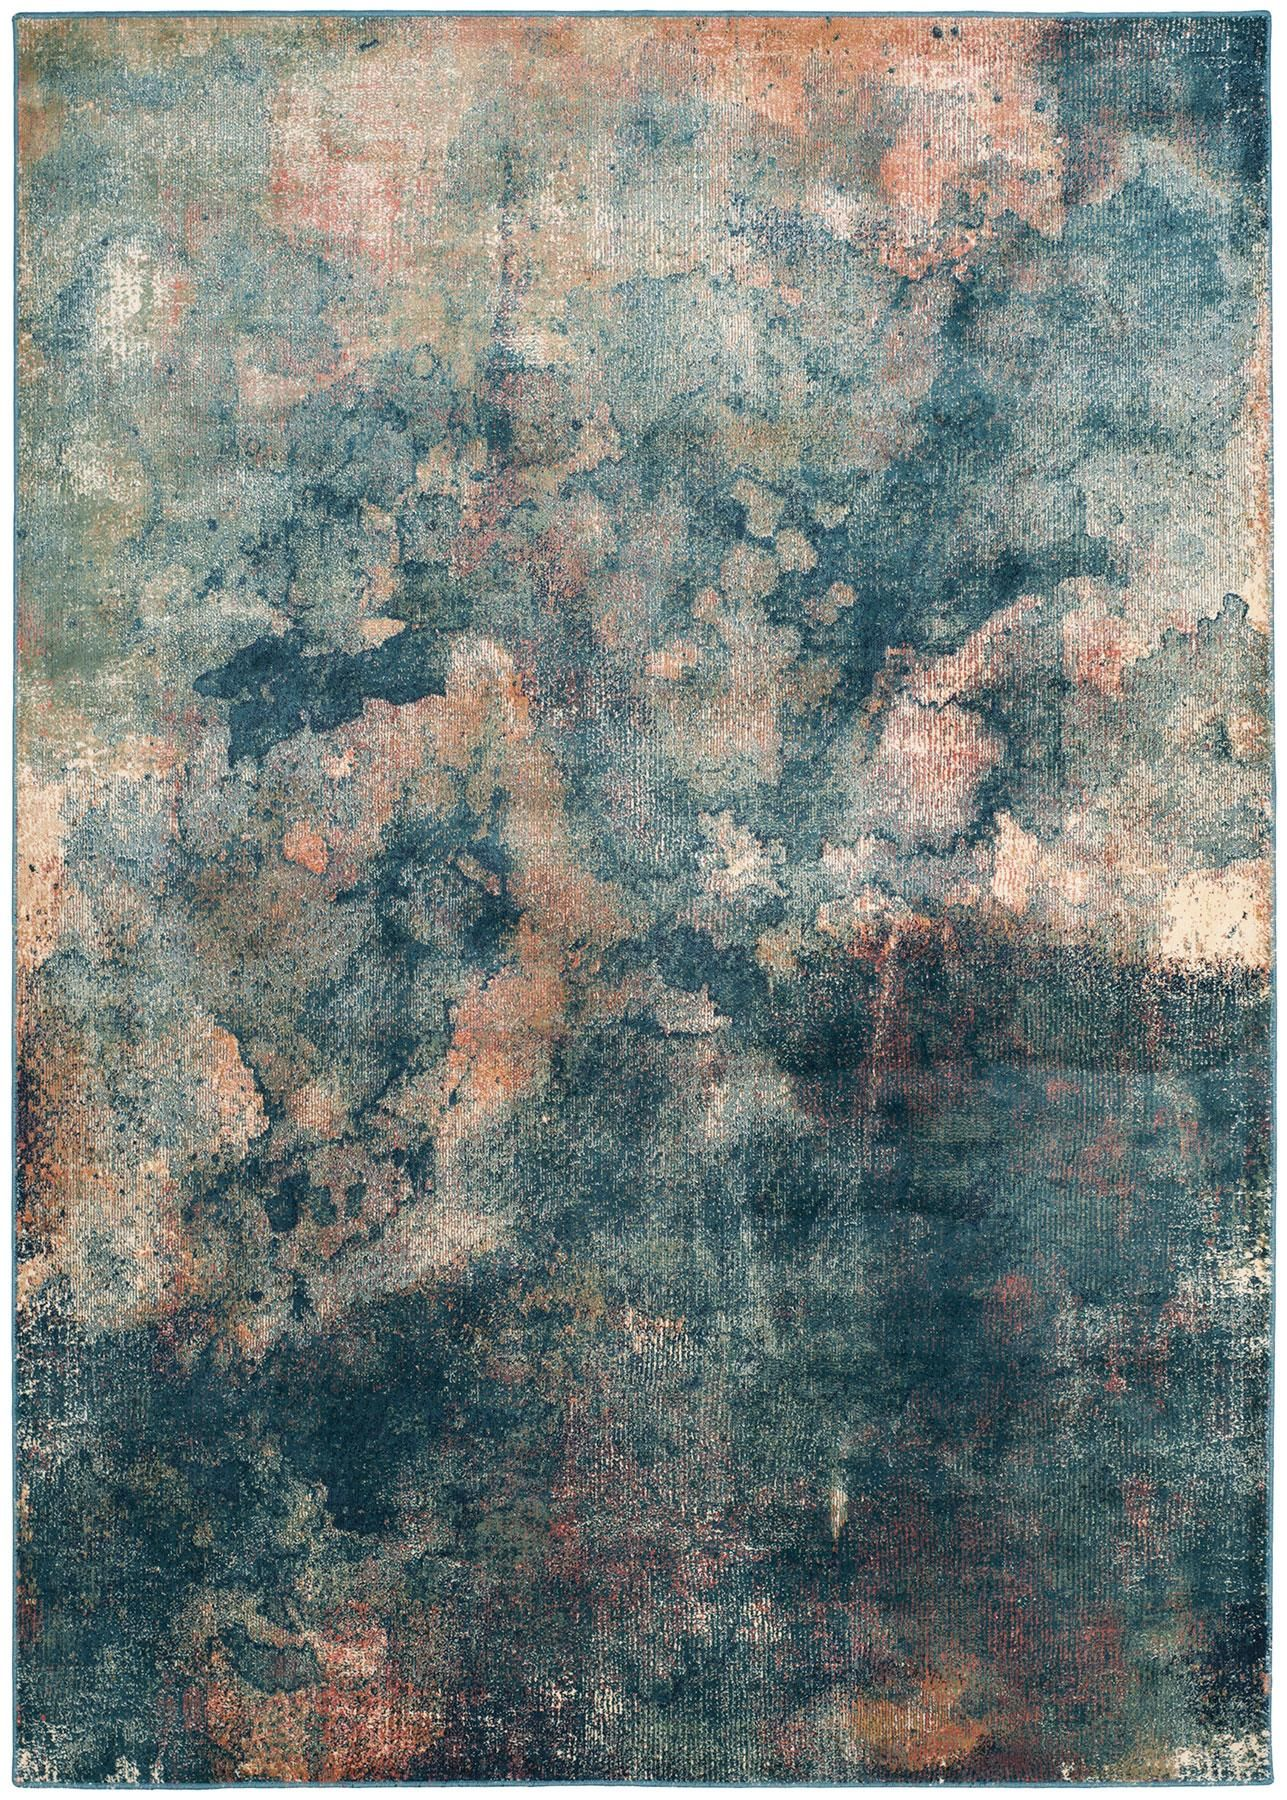 Cnv765 2220 Rug From Constellation Vintage Collection Nature Inspired Glimpses Of Sky Are